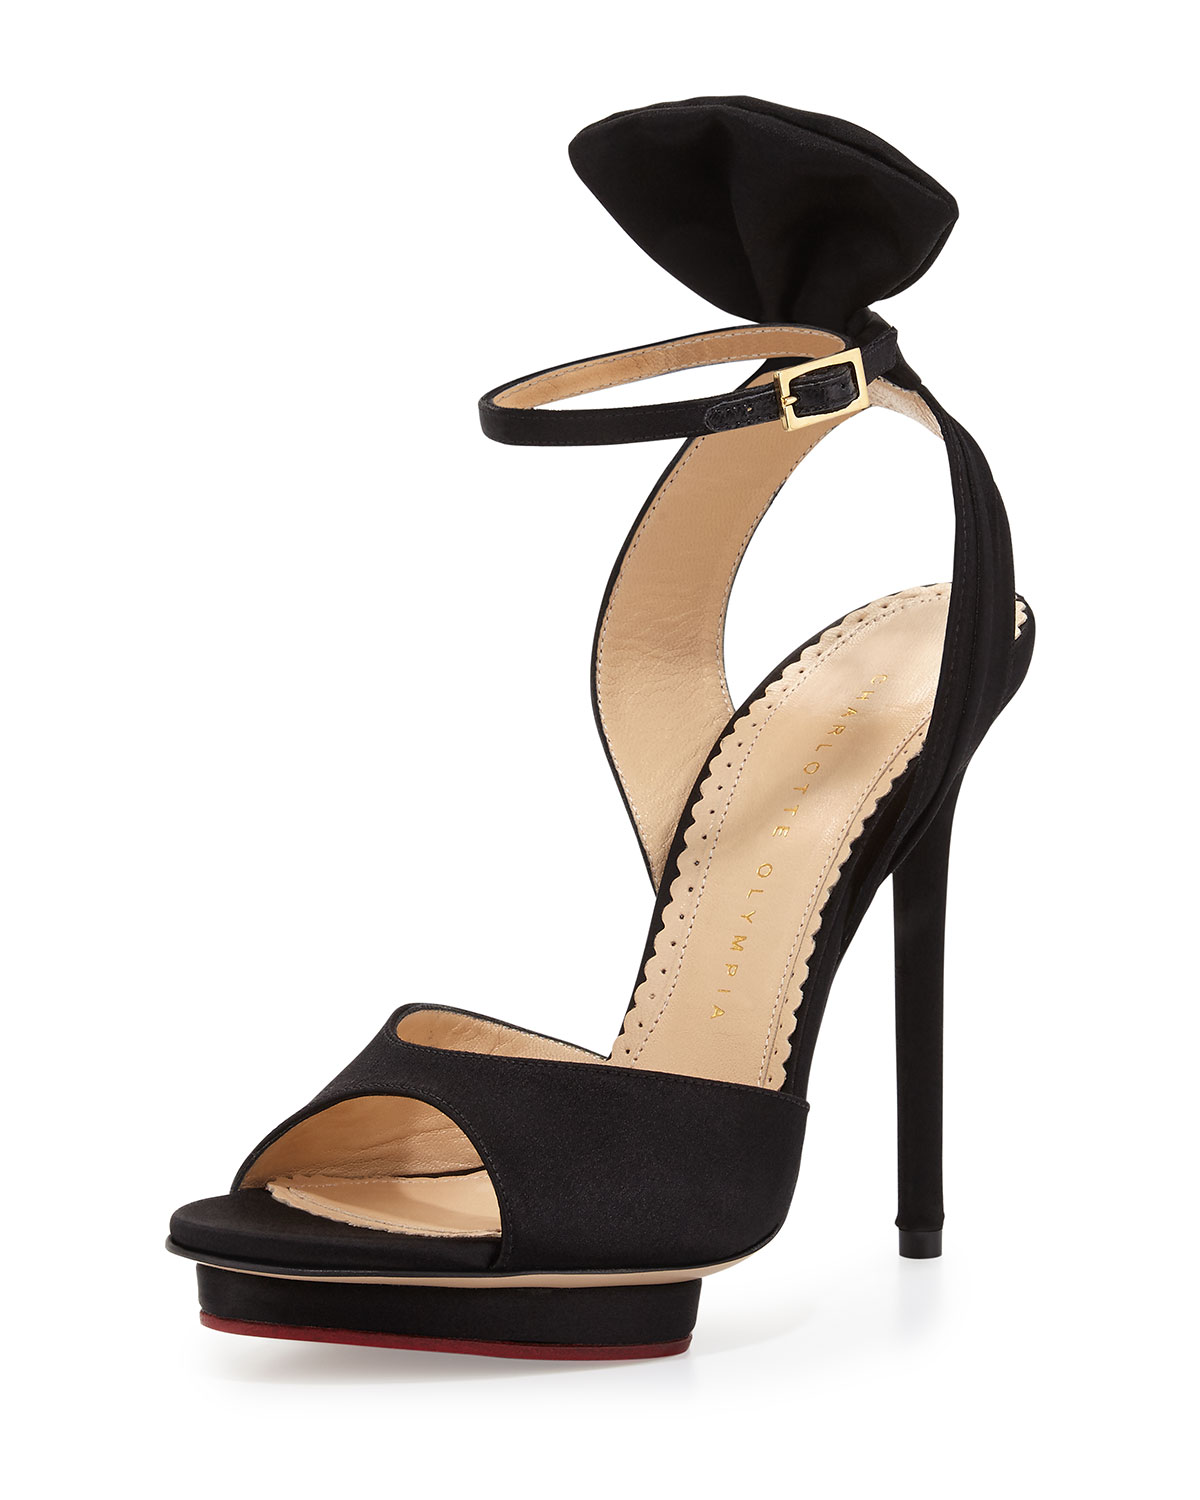 Wallace Bow-Back Satin Evening Sandal, Black, Size: 36.0B/6.0B - Charlotte Olympia